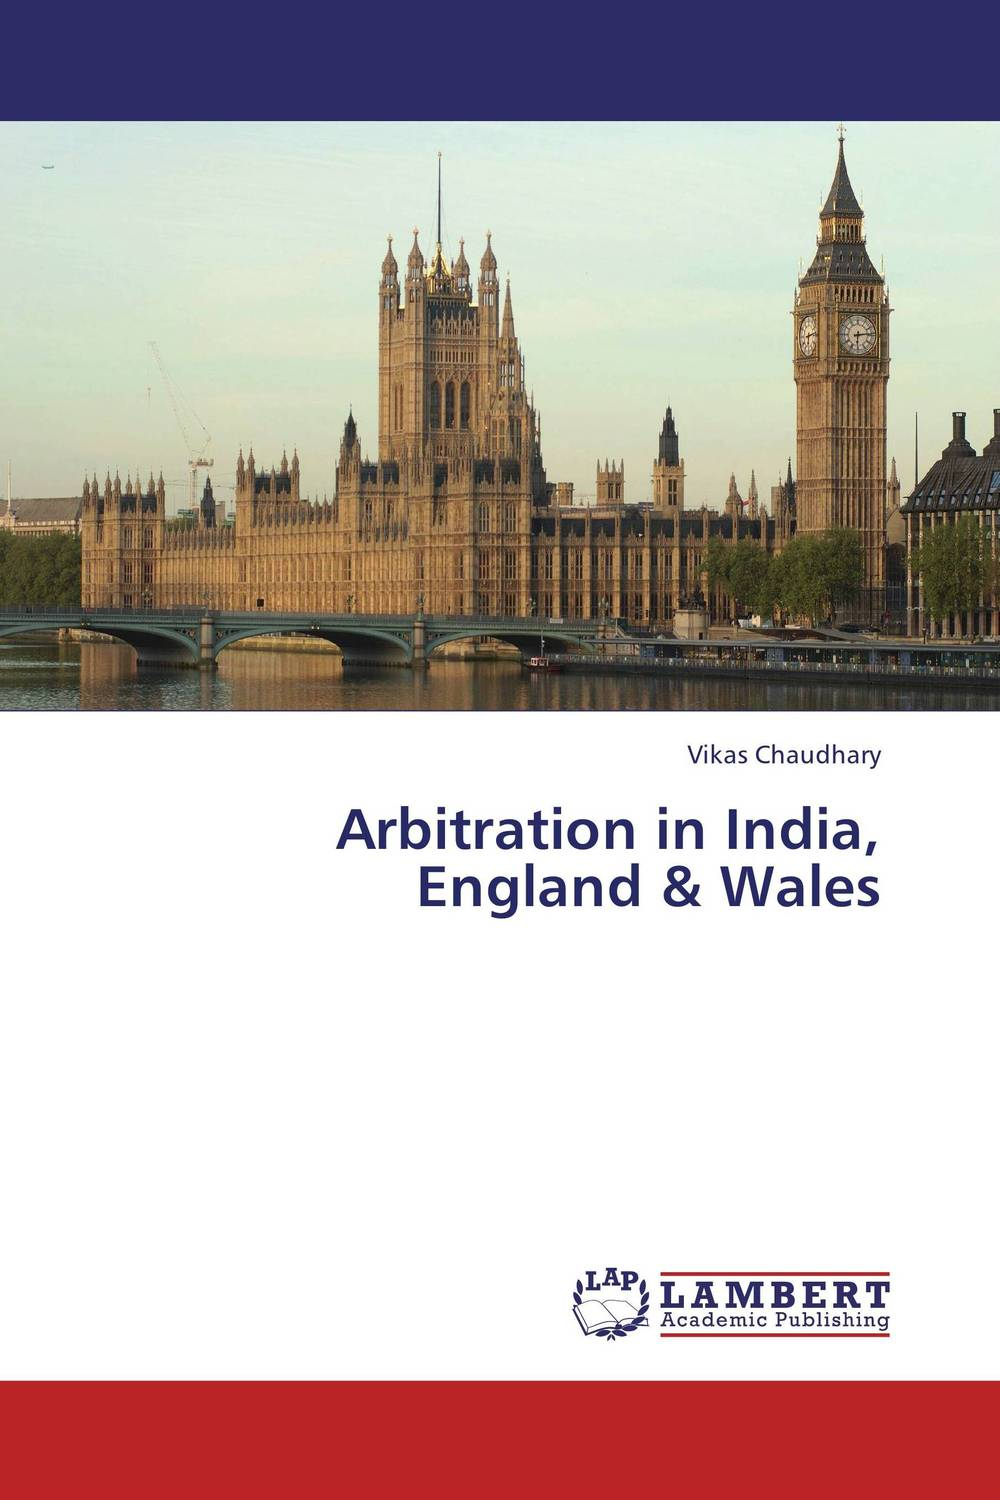 Arbitration in India, England & Wales pastoralism and agriculture pennar basin india